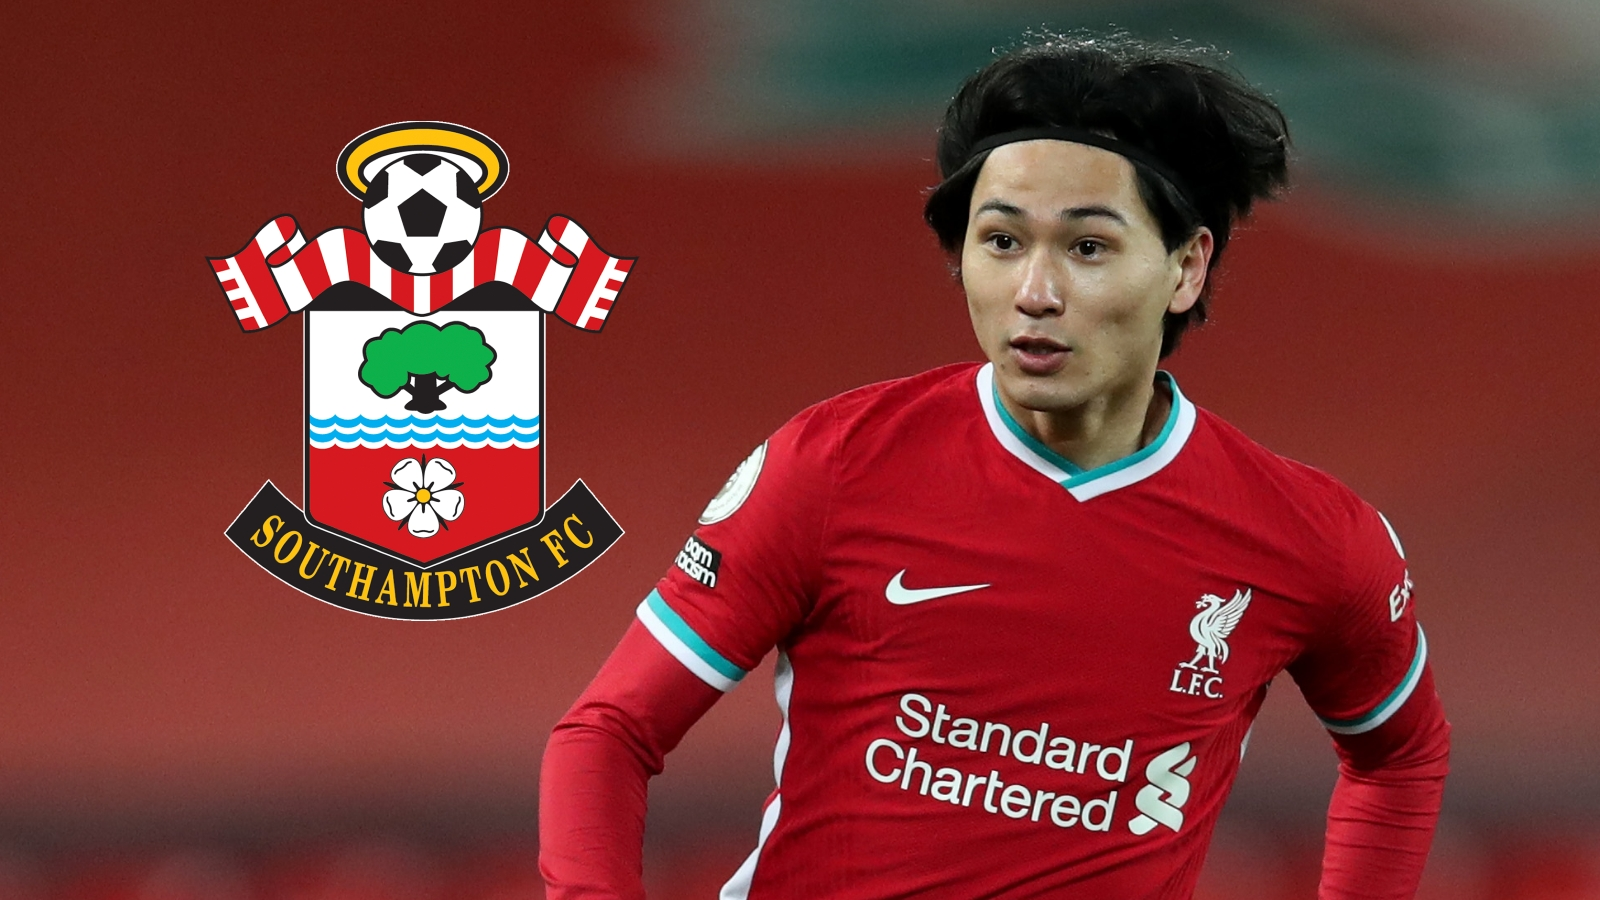 'If Liverpool fancied Minamino they wouldn't have let him go' - Klopp has no use for winger, says ex-Southampton boss Redknapp